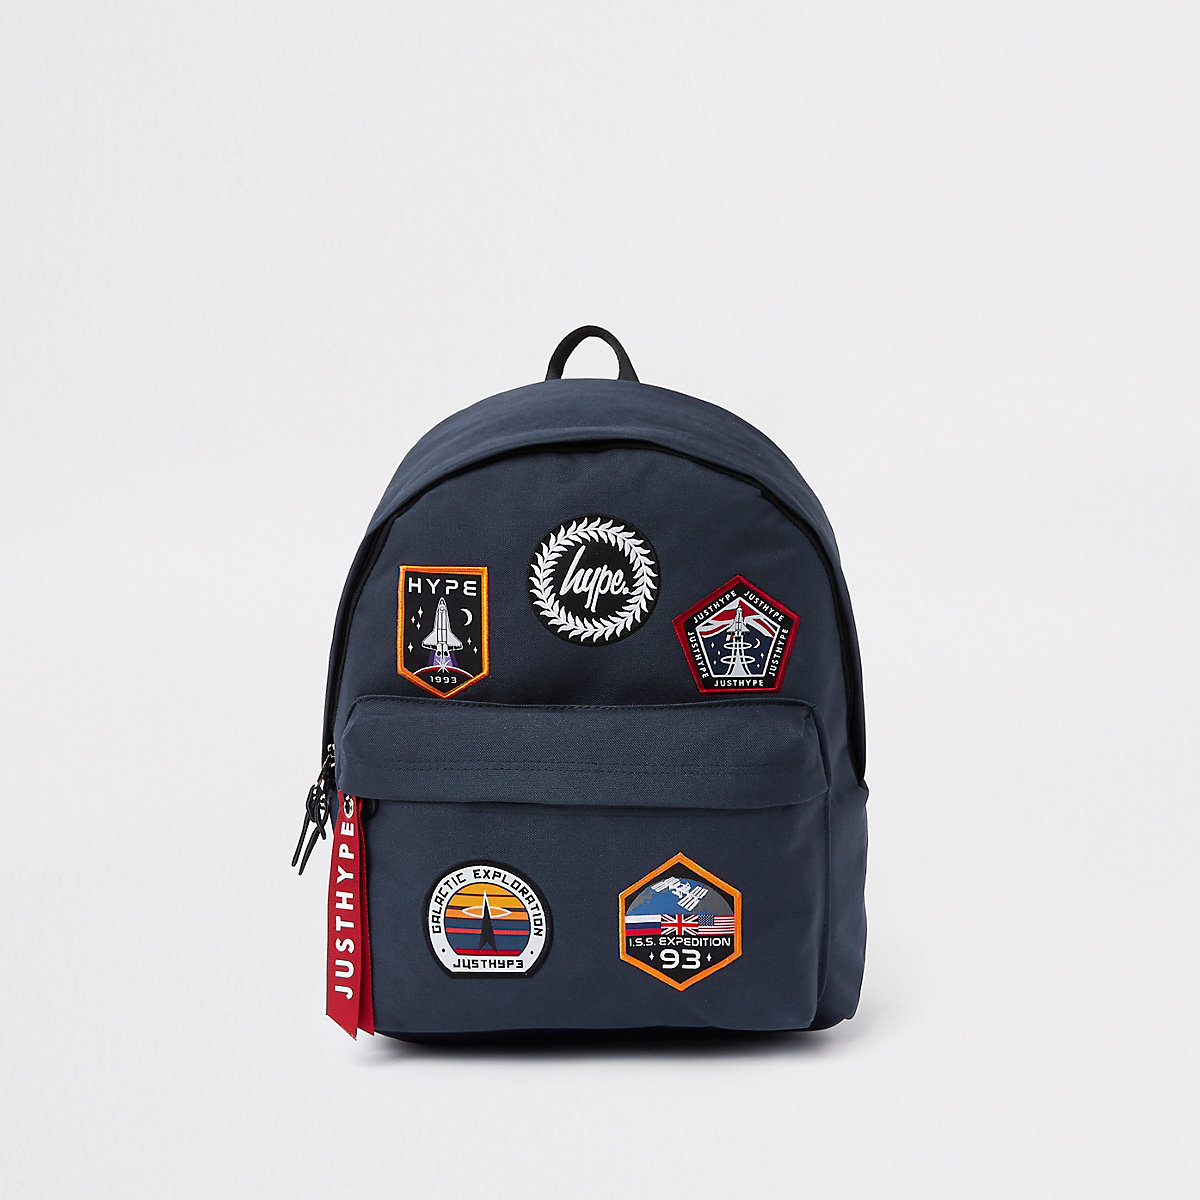 Hype navy space embroidered backpack